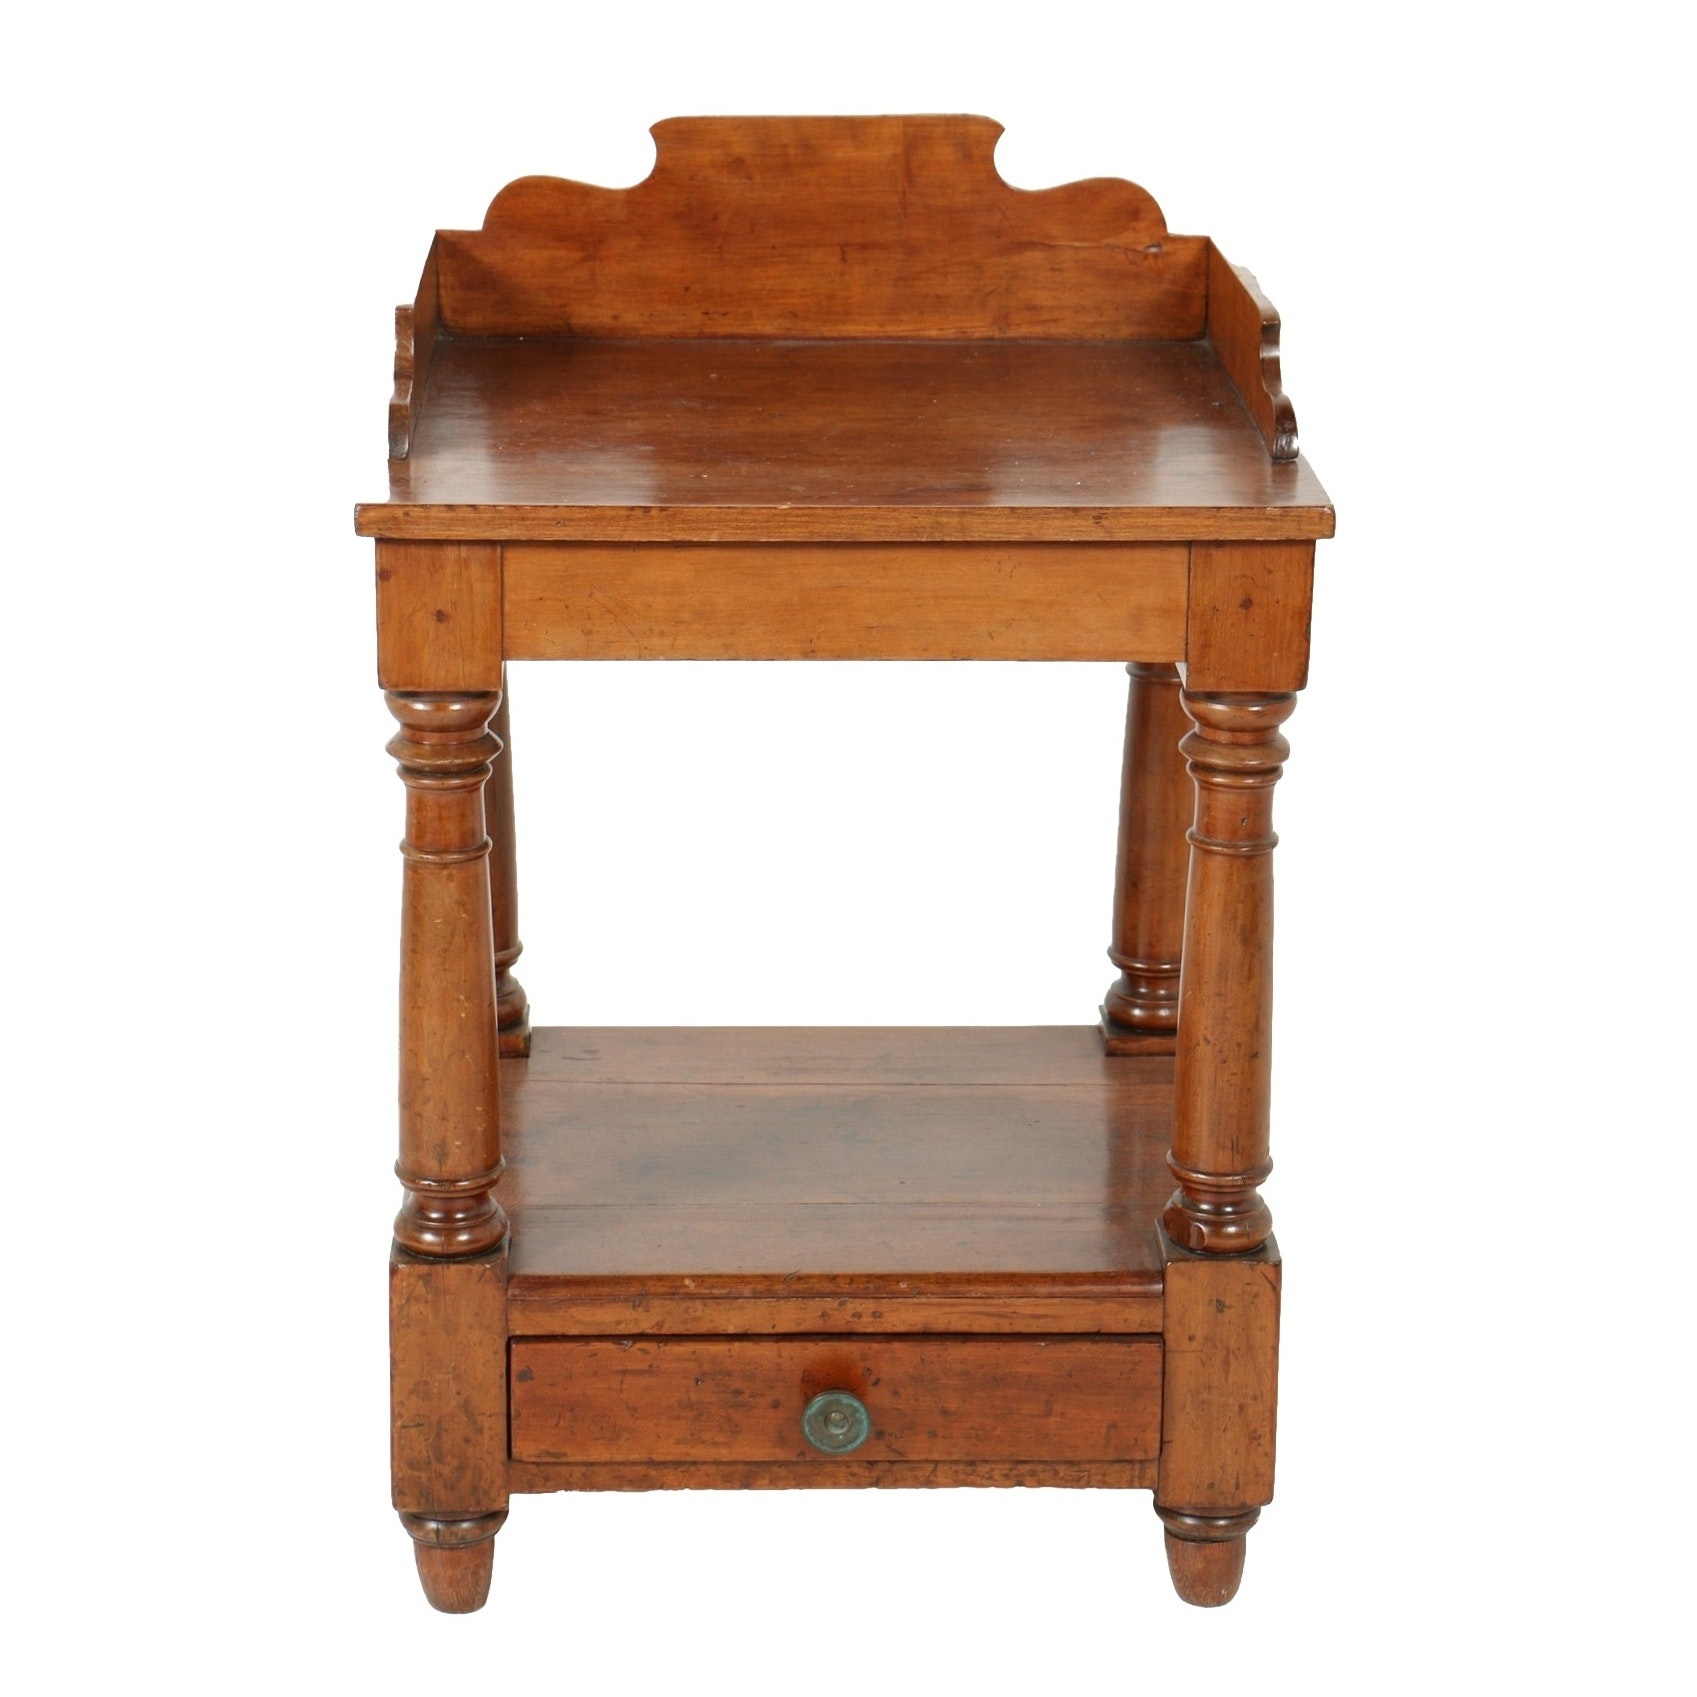 Antique Country Sheraton Cherry Washstand, Circa Second Quarter 19th Century